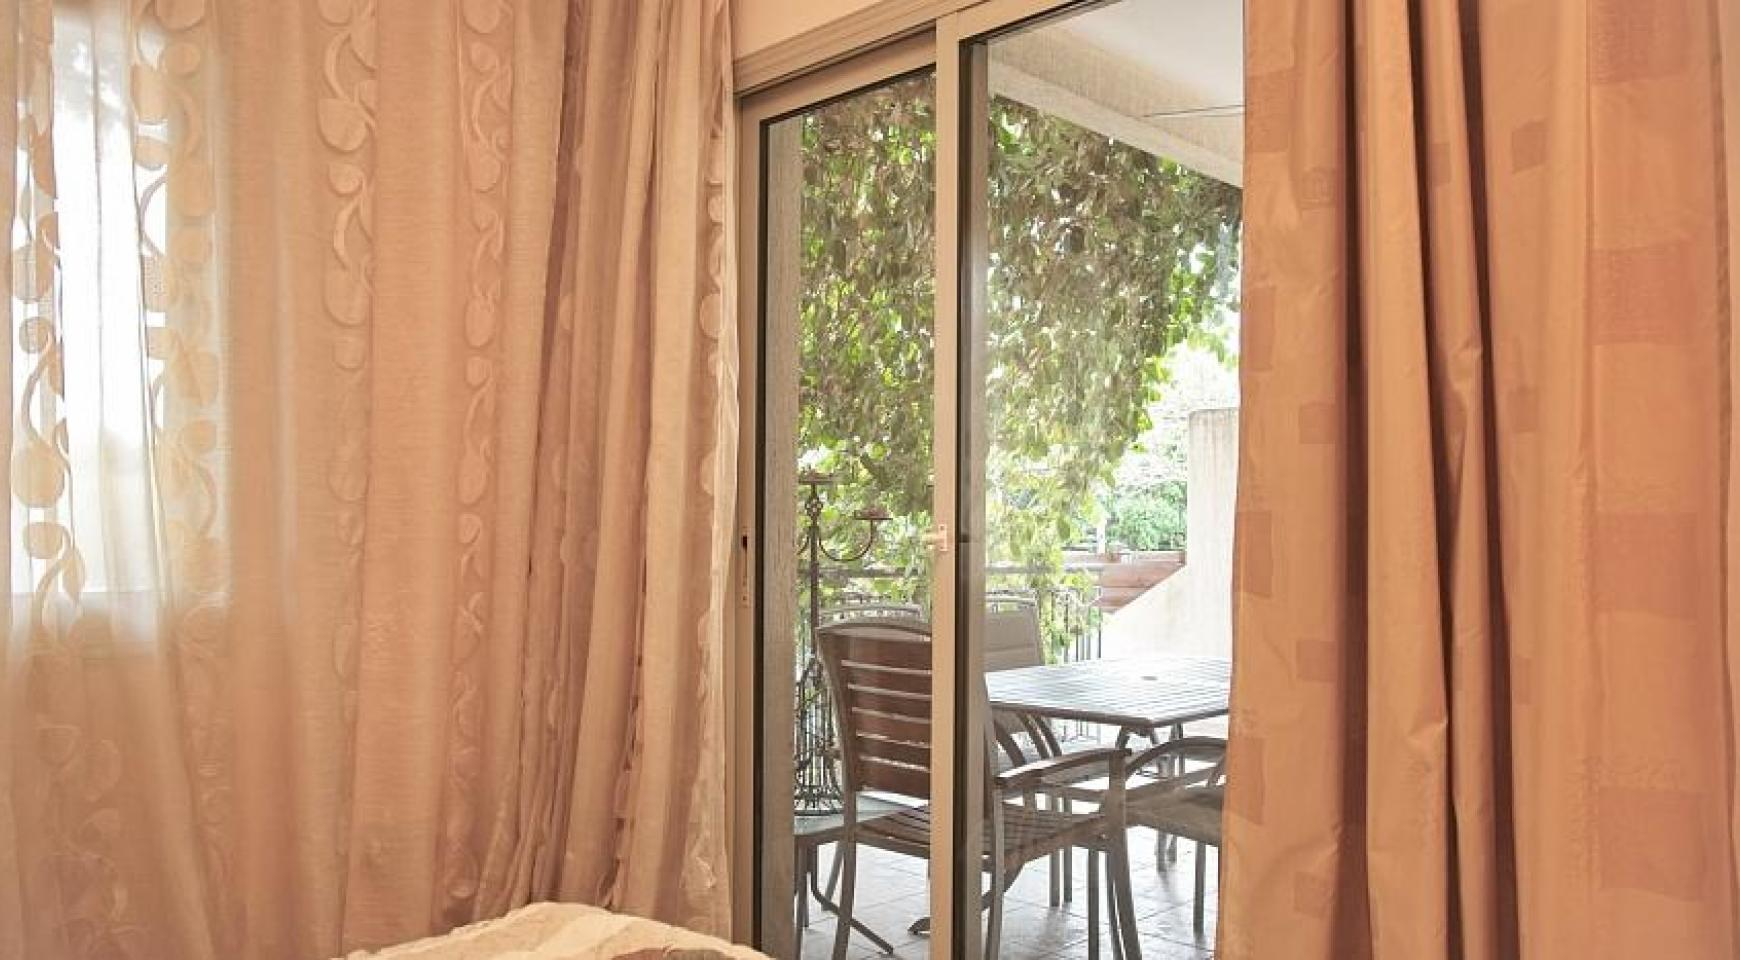 SPECIAL OFFER! 2 Bedroom Apartment with Private Garden - 8